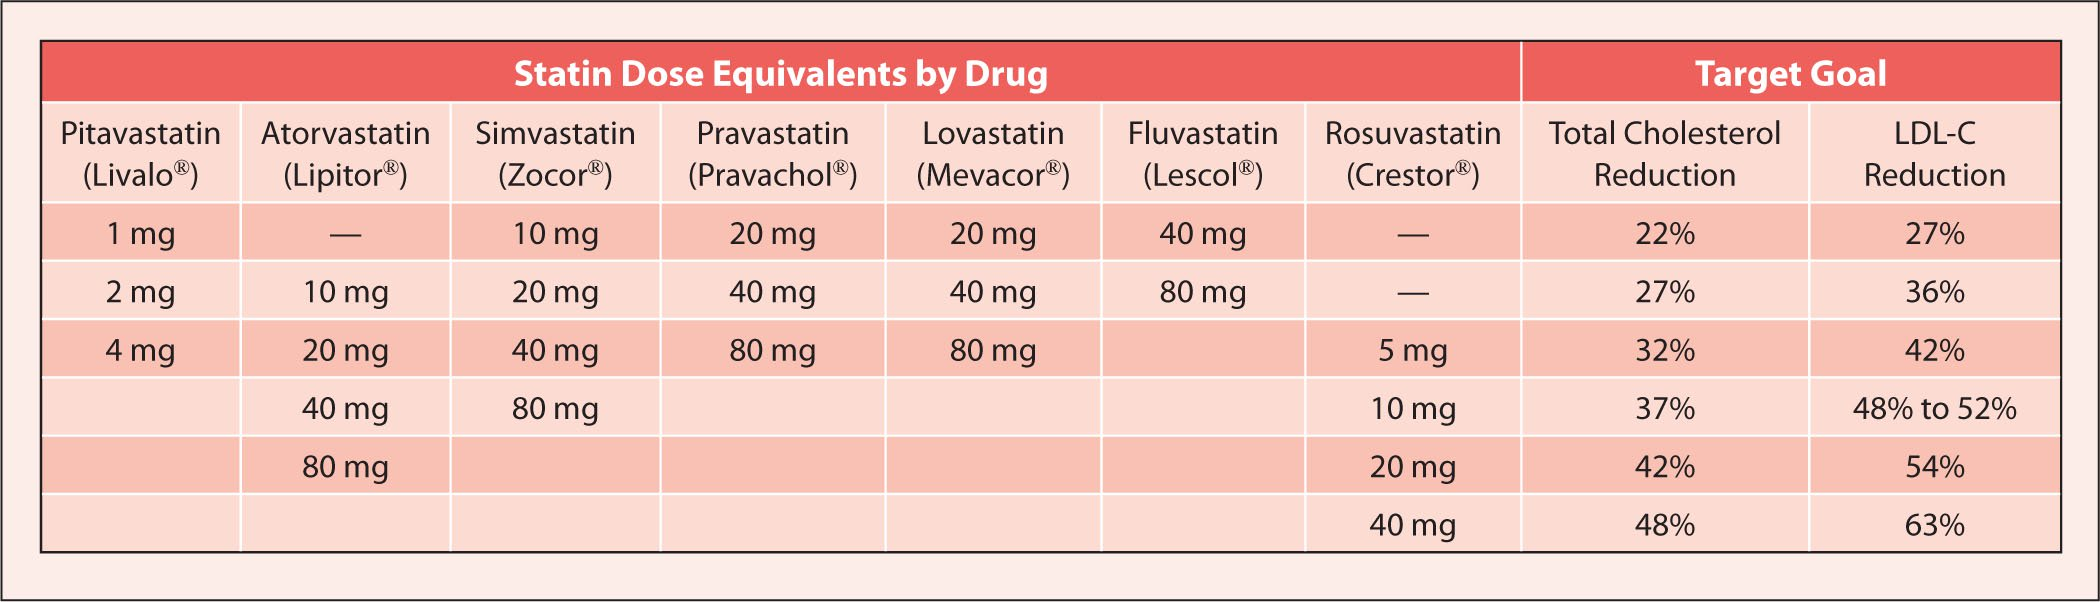 Statin Dose Equivalency Chart Pictures to Pin on Pinterest